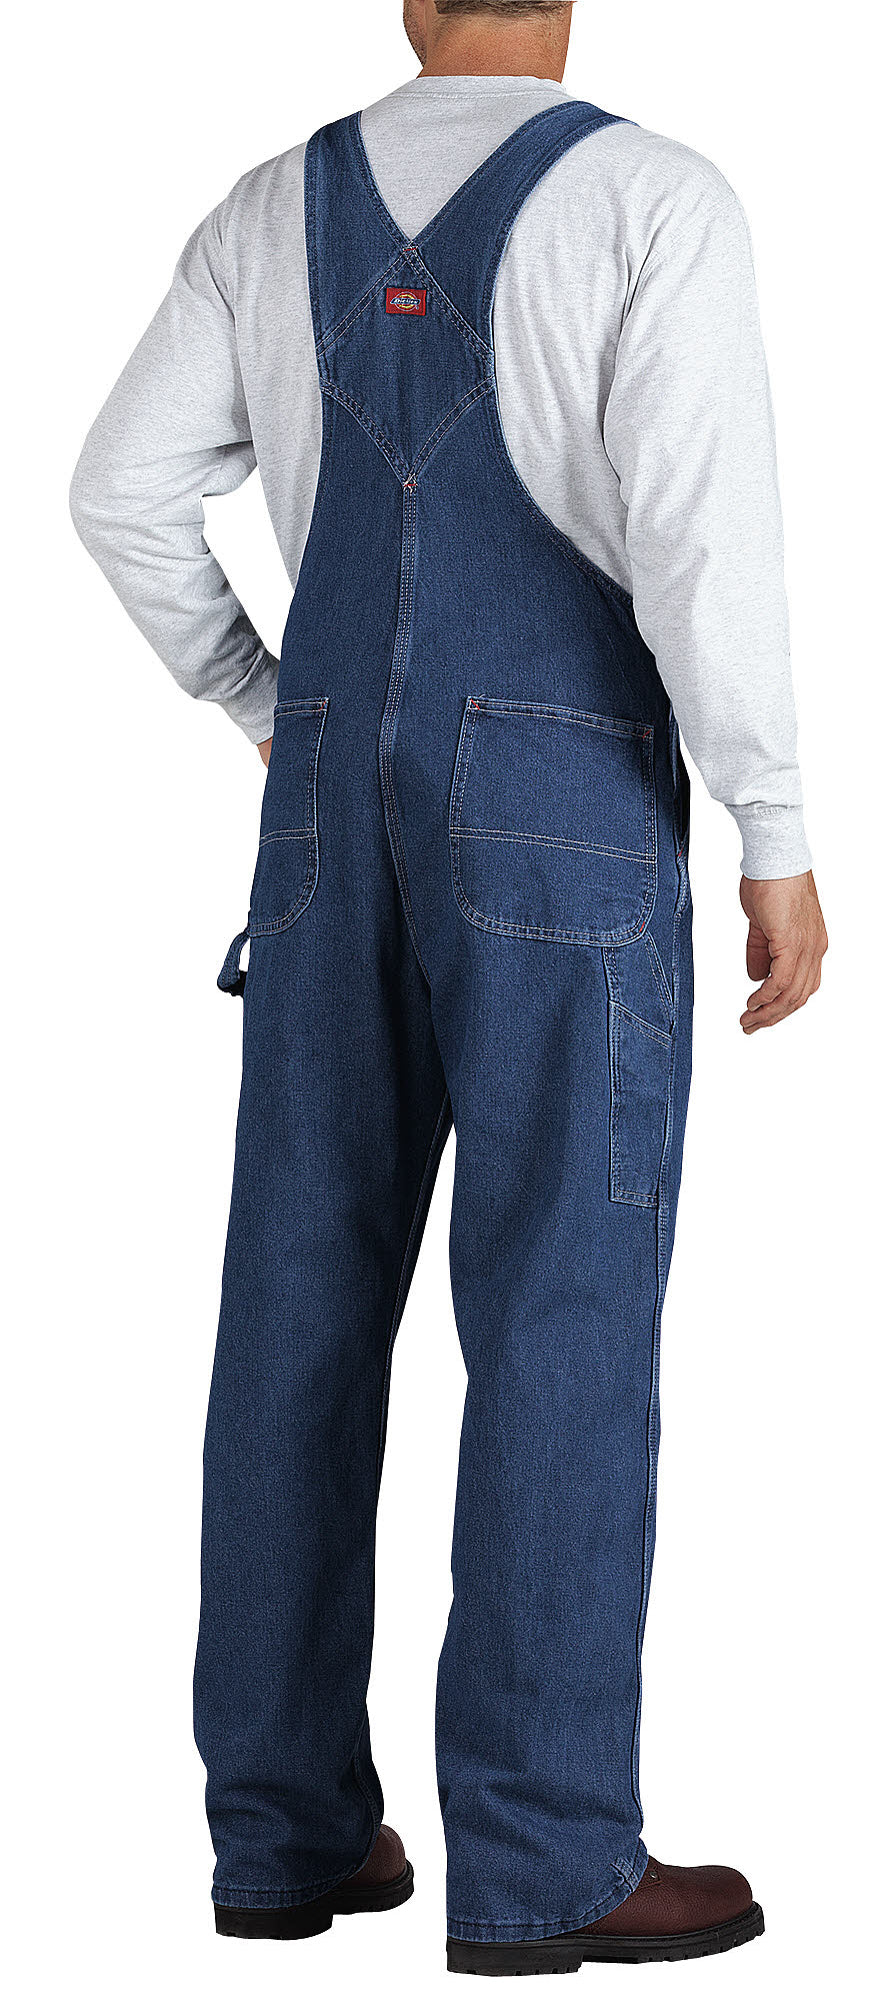 c3049cad342 Dickies Mens Indigo Blue Stonewashed Indigo Bib Overall – The ...